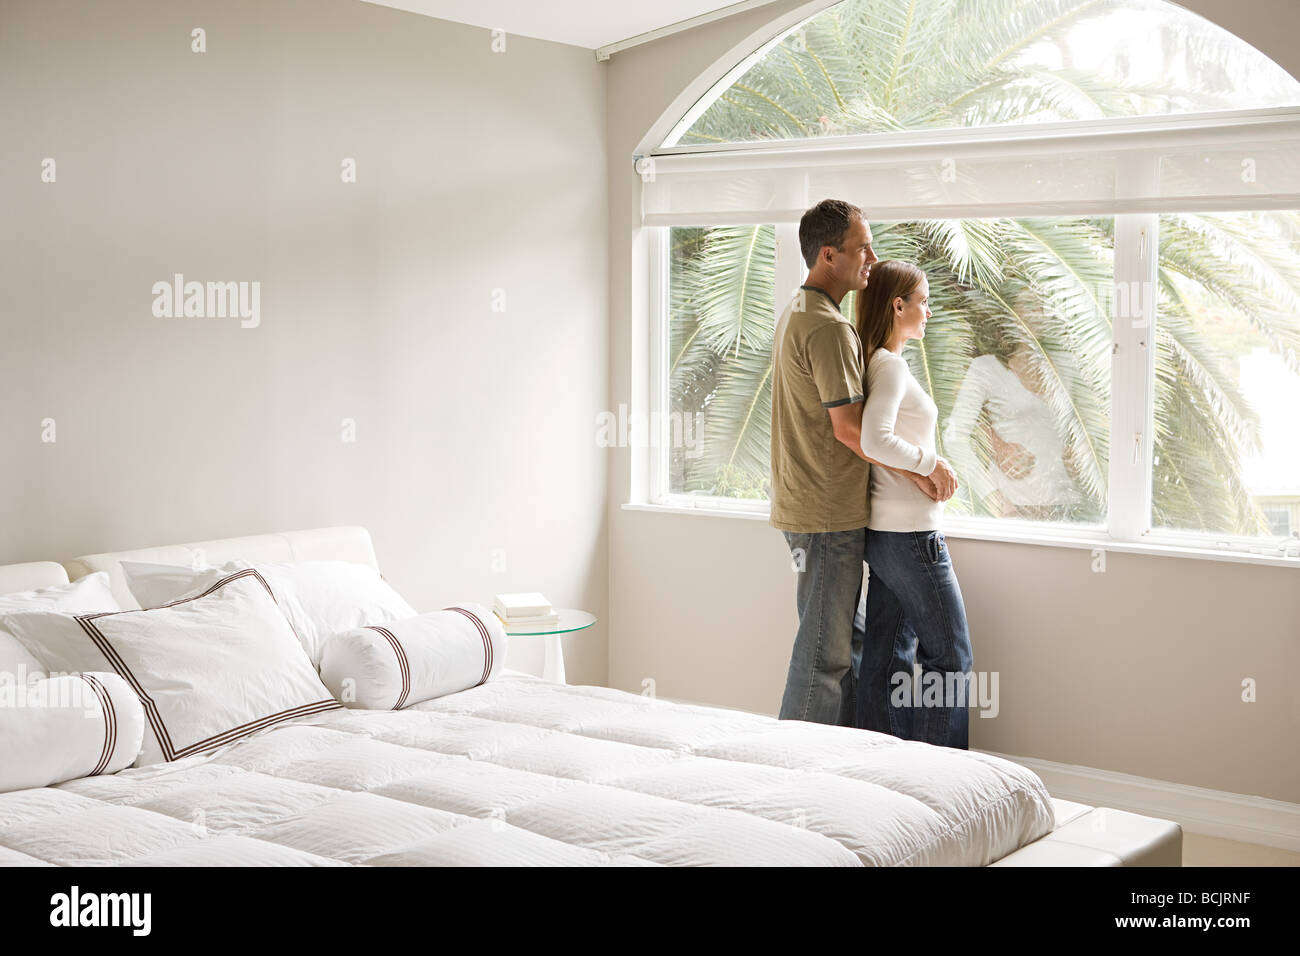 Couple looking out of bedroom window - Stock Image